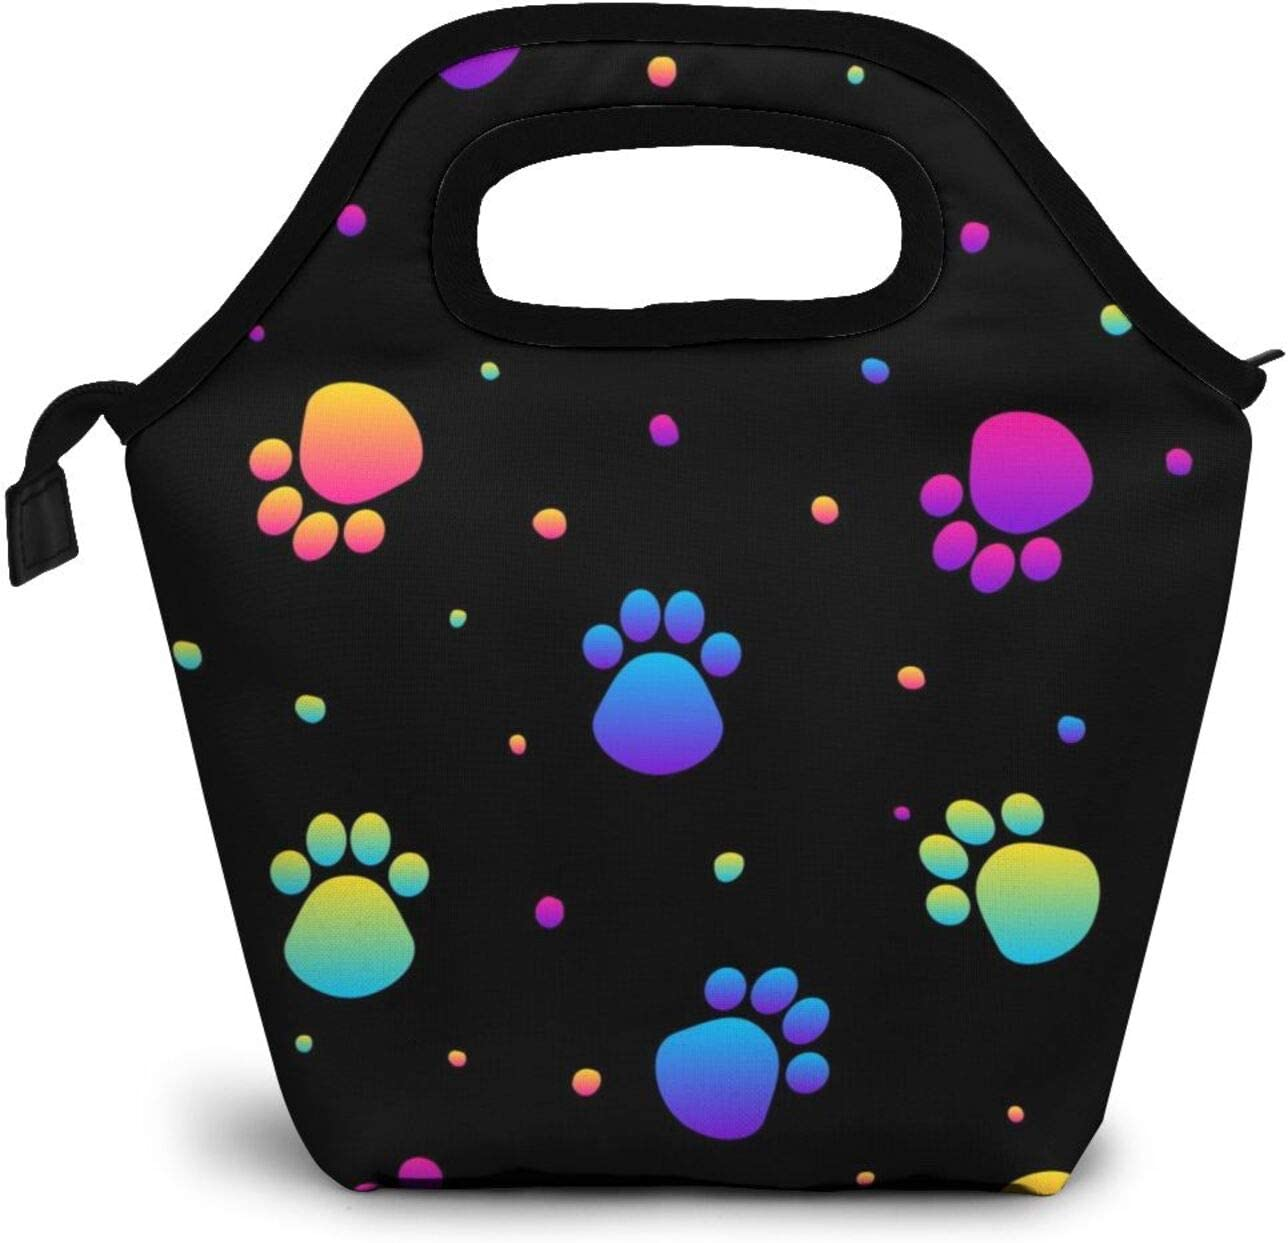 Colorful Dog Paw Print Lunch Box Insulated Meal Bag Cute Lunch Bag with Black Background ,Reusable Snack Bag Food Container Tote Bag.